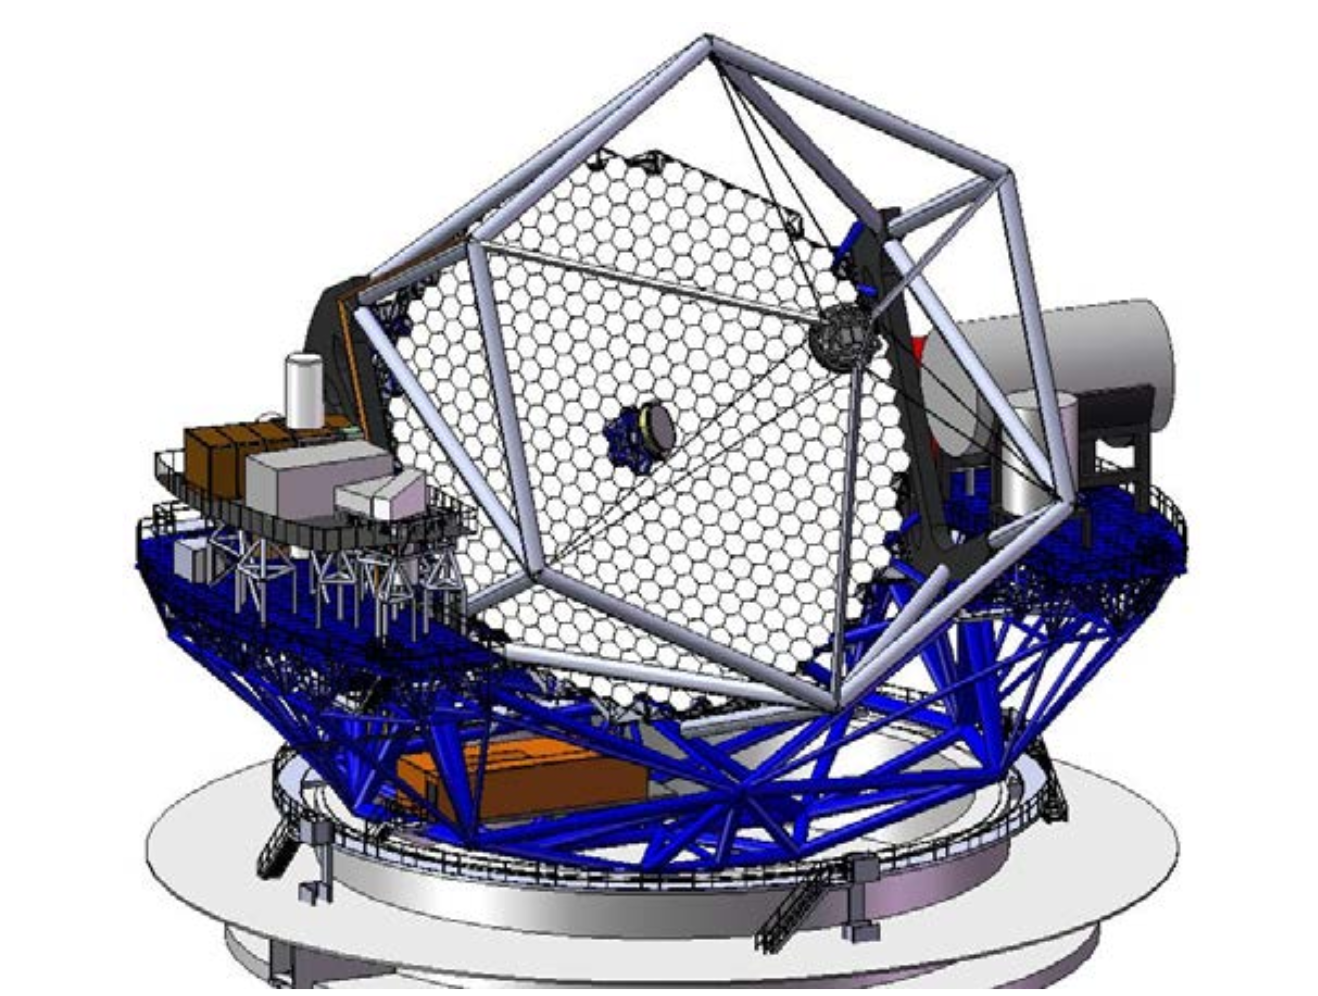 Rendered drawing of TMT Primary Mirror (M1) within the complete telescope structure.